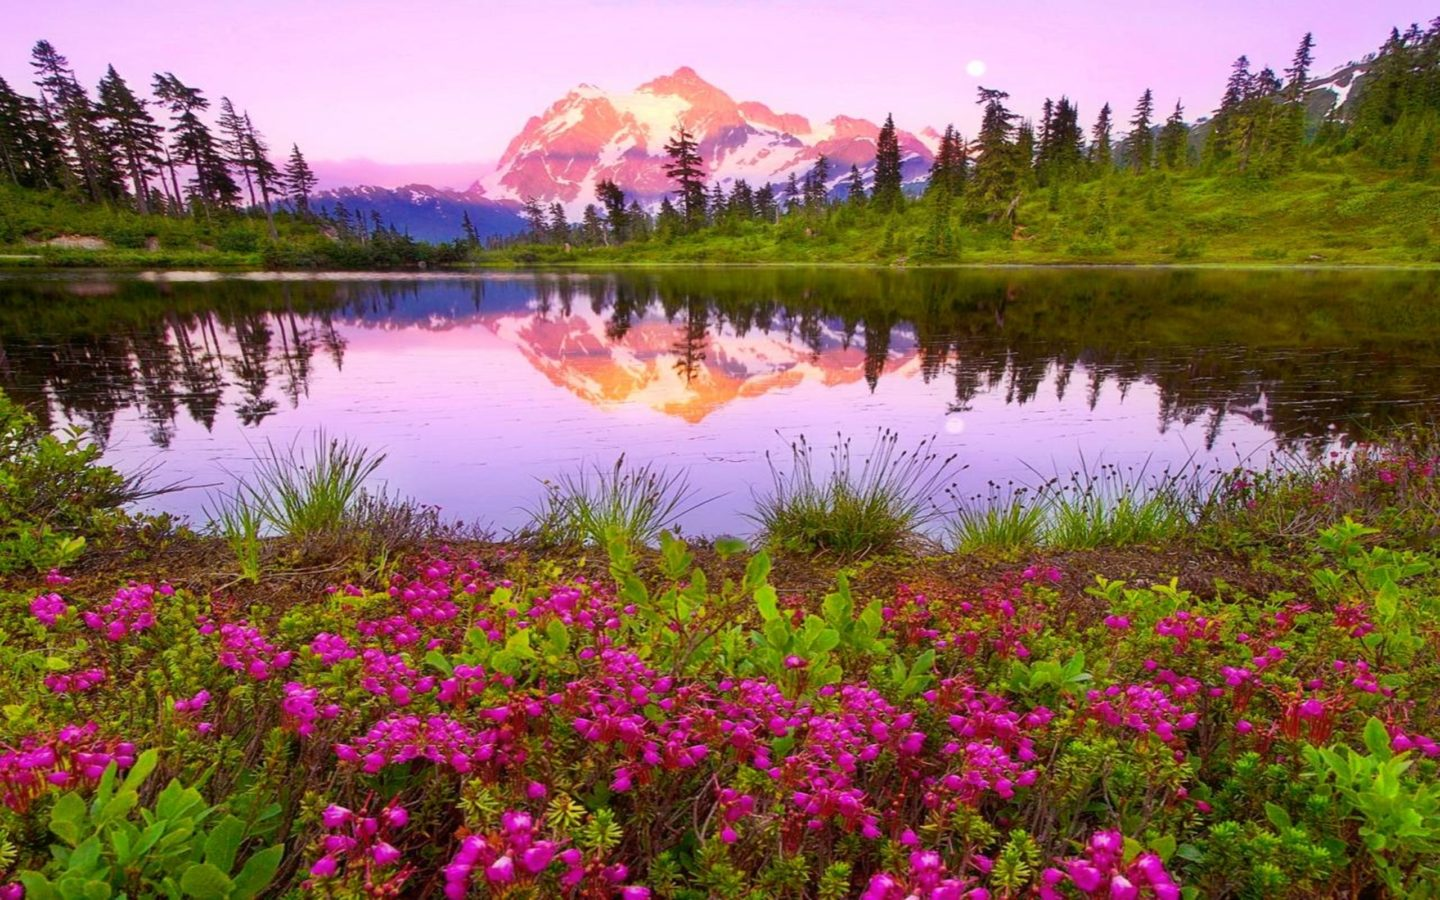 Free Android Fall Wallpaper Mountain Paradise Nature Colorful Lake Sky 1280x960 Hd